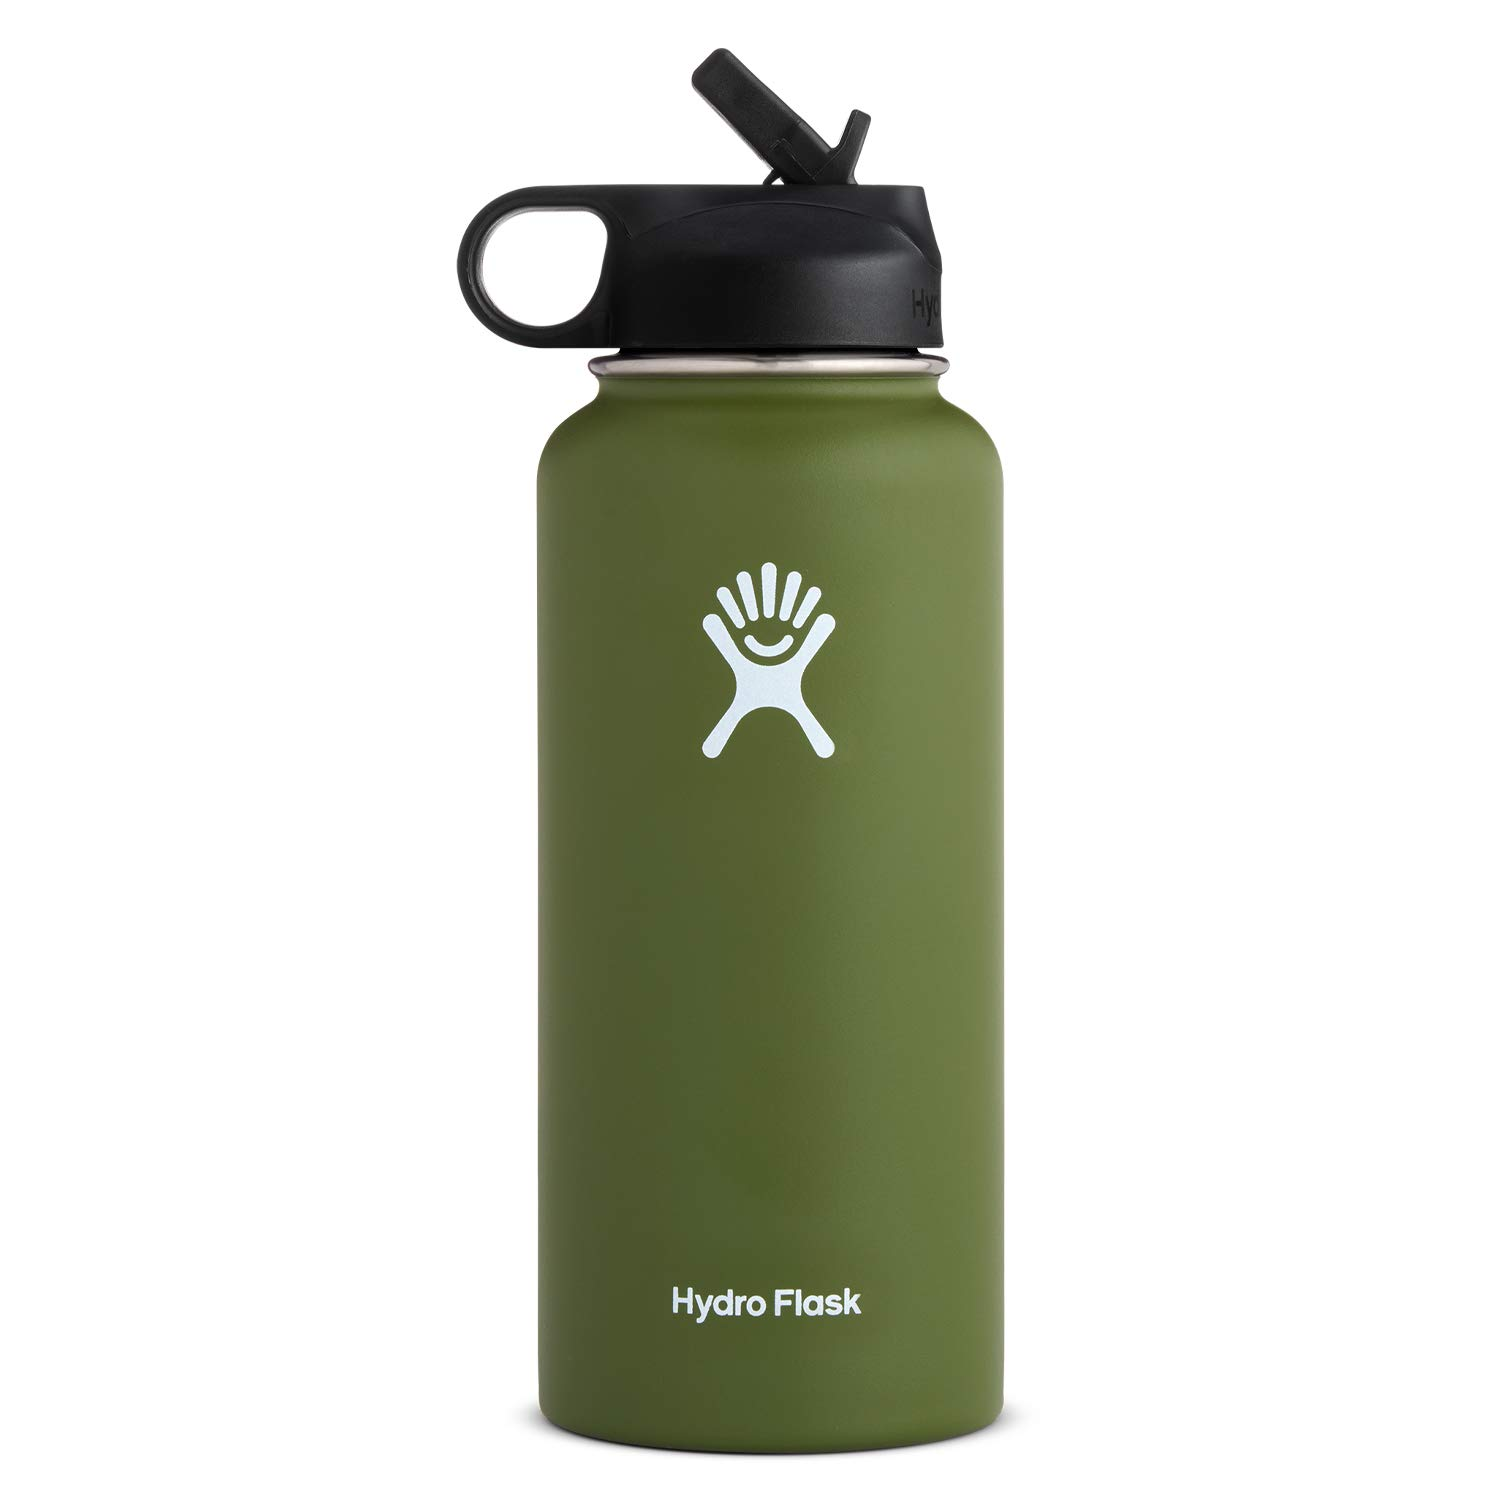 Hydro Flask Water Bottle Stainless